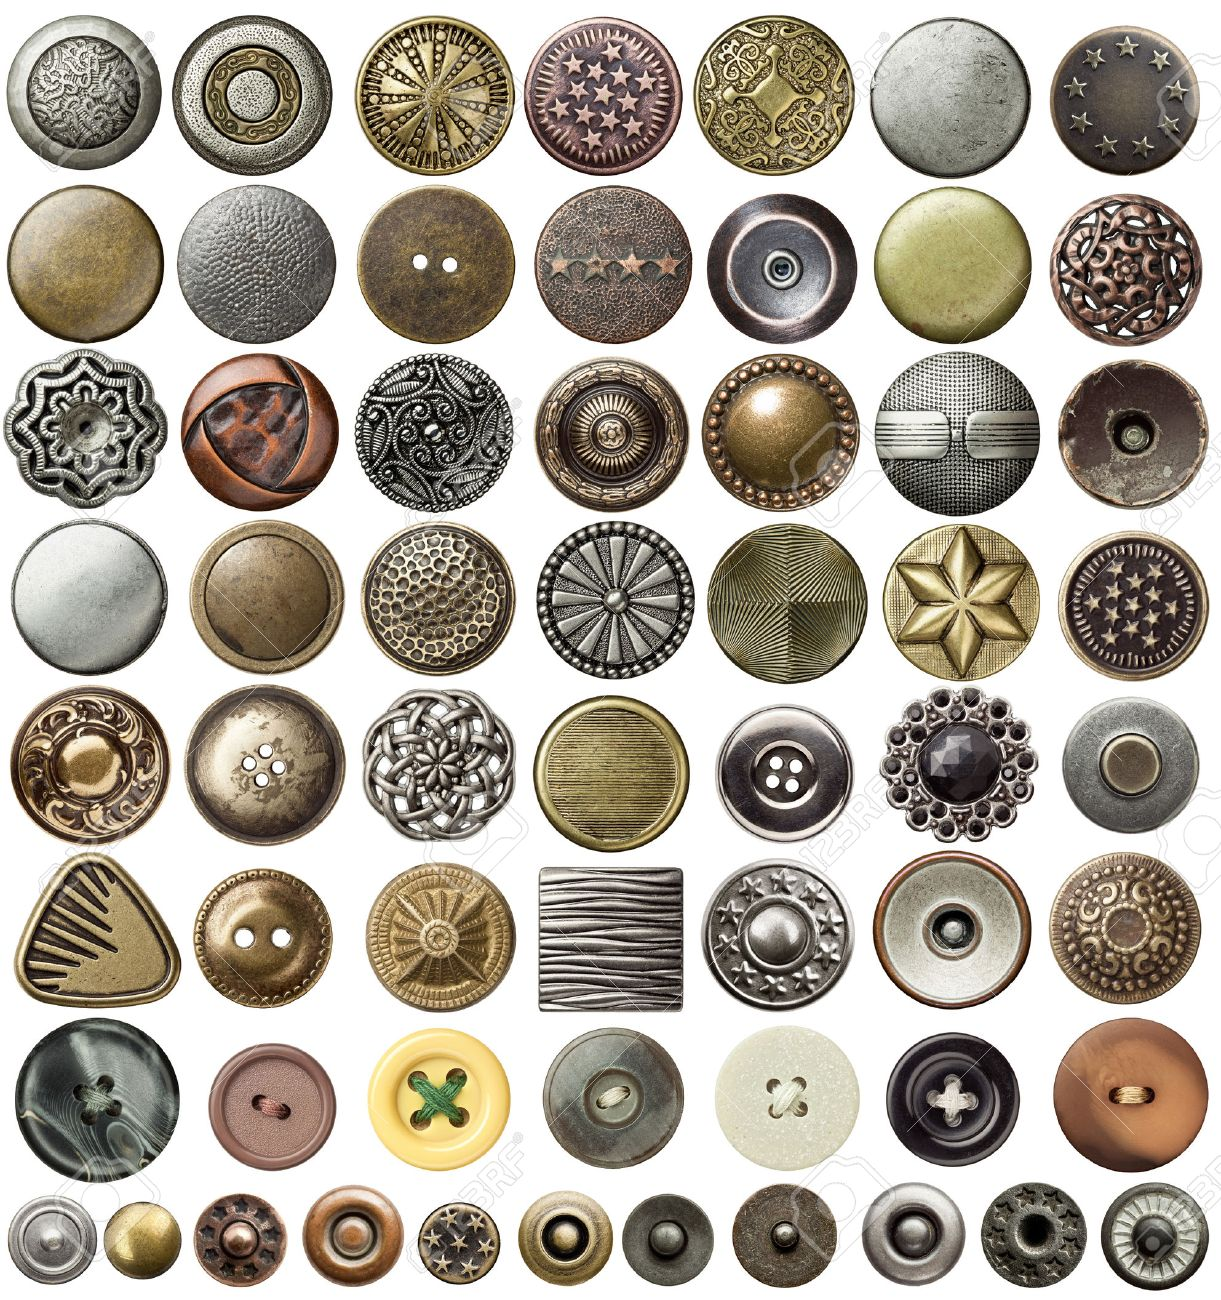 Various sewing buttons and jeans rivets. Stock Photo - 38641987